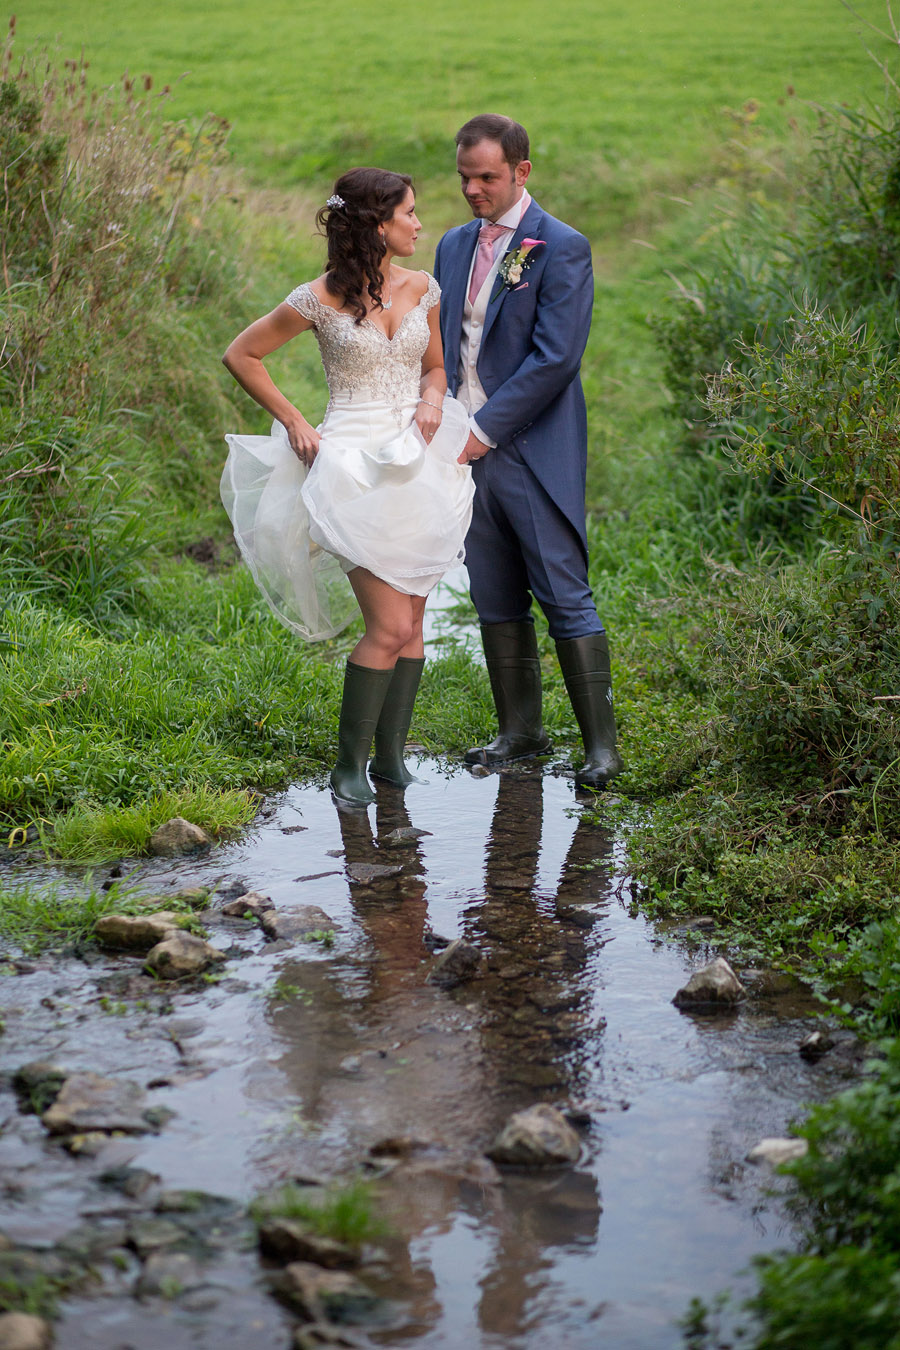 Outdoor wedding at Priston Mill watermill, with images by Martin Dabek Photography on the English Wedding blog (25)